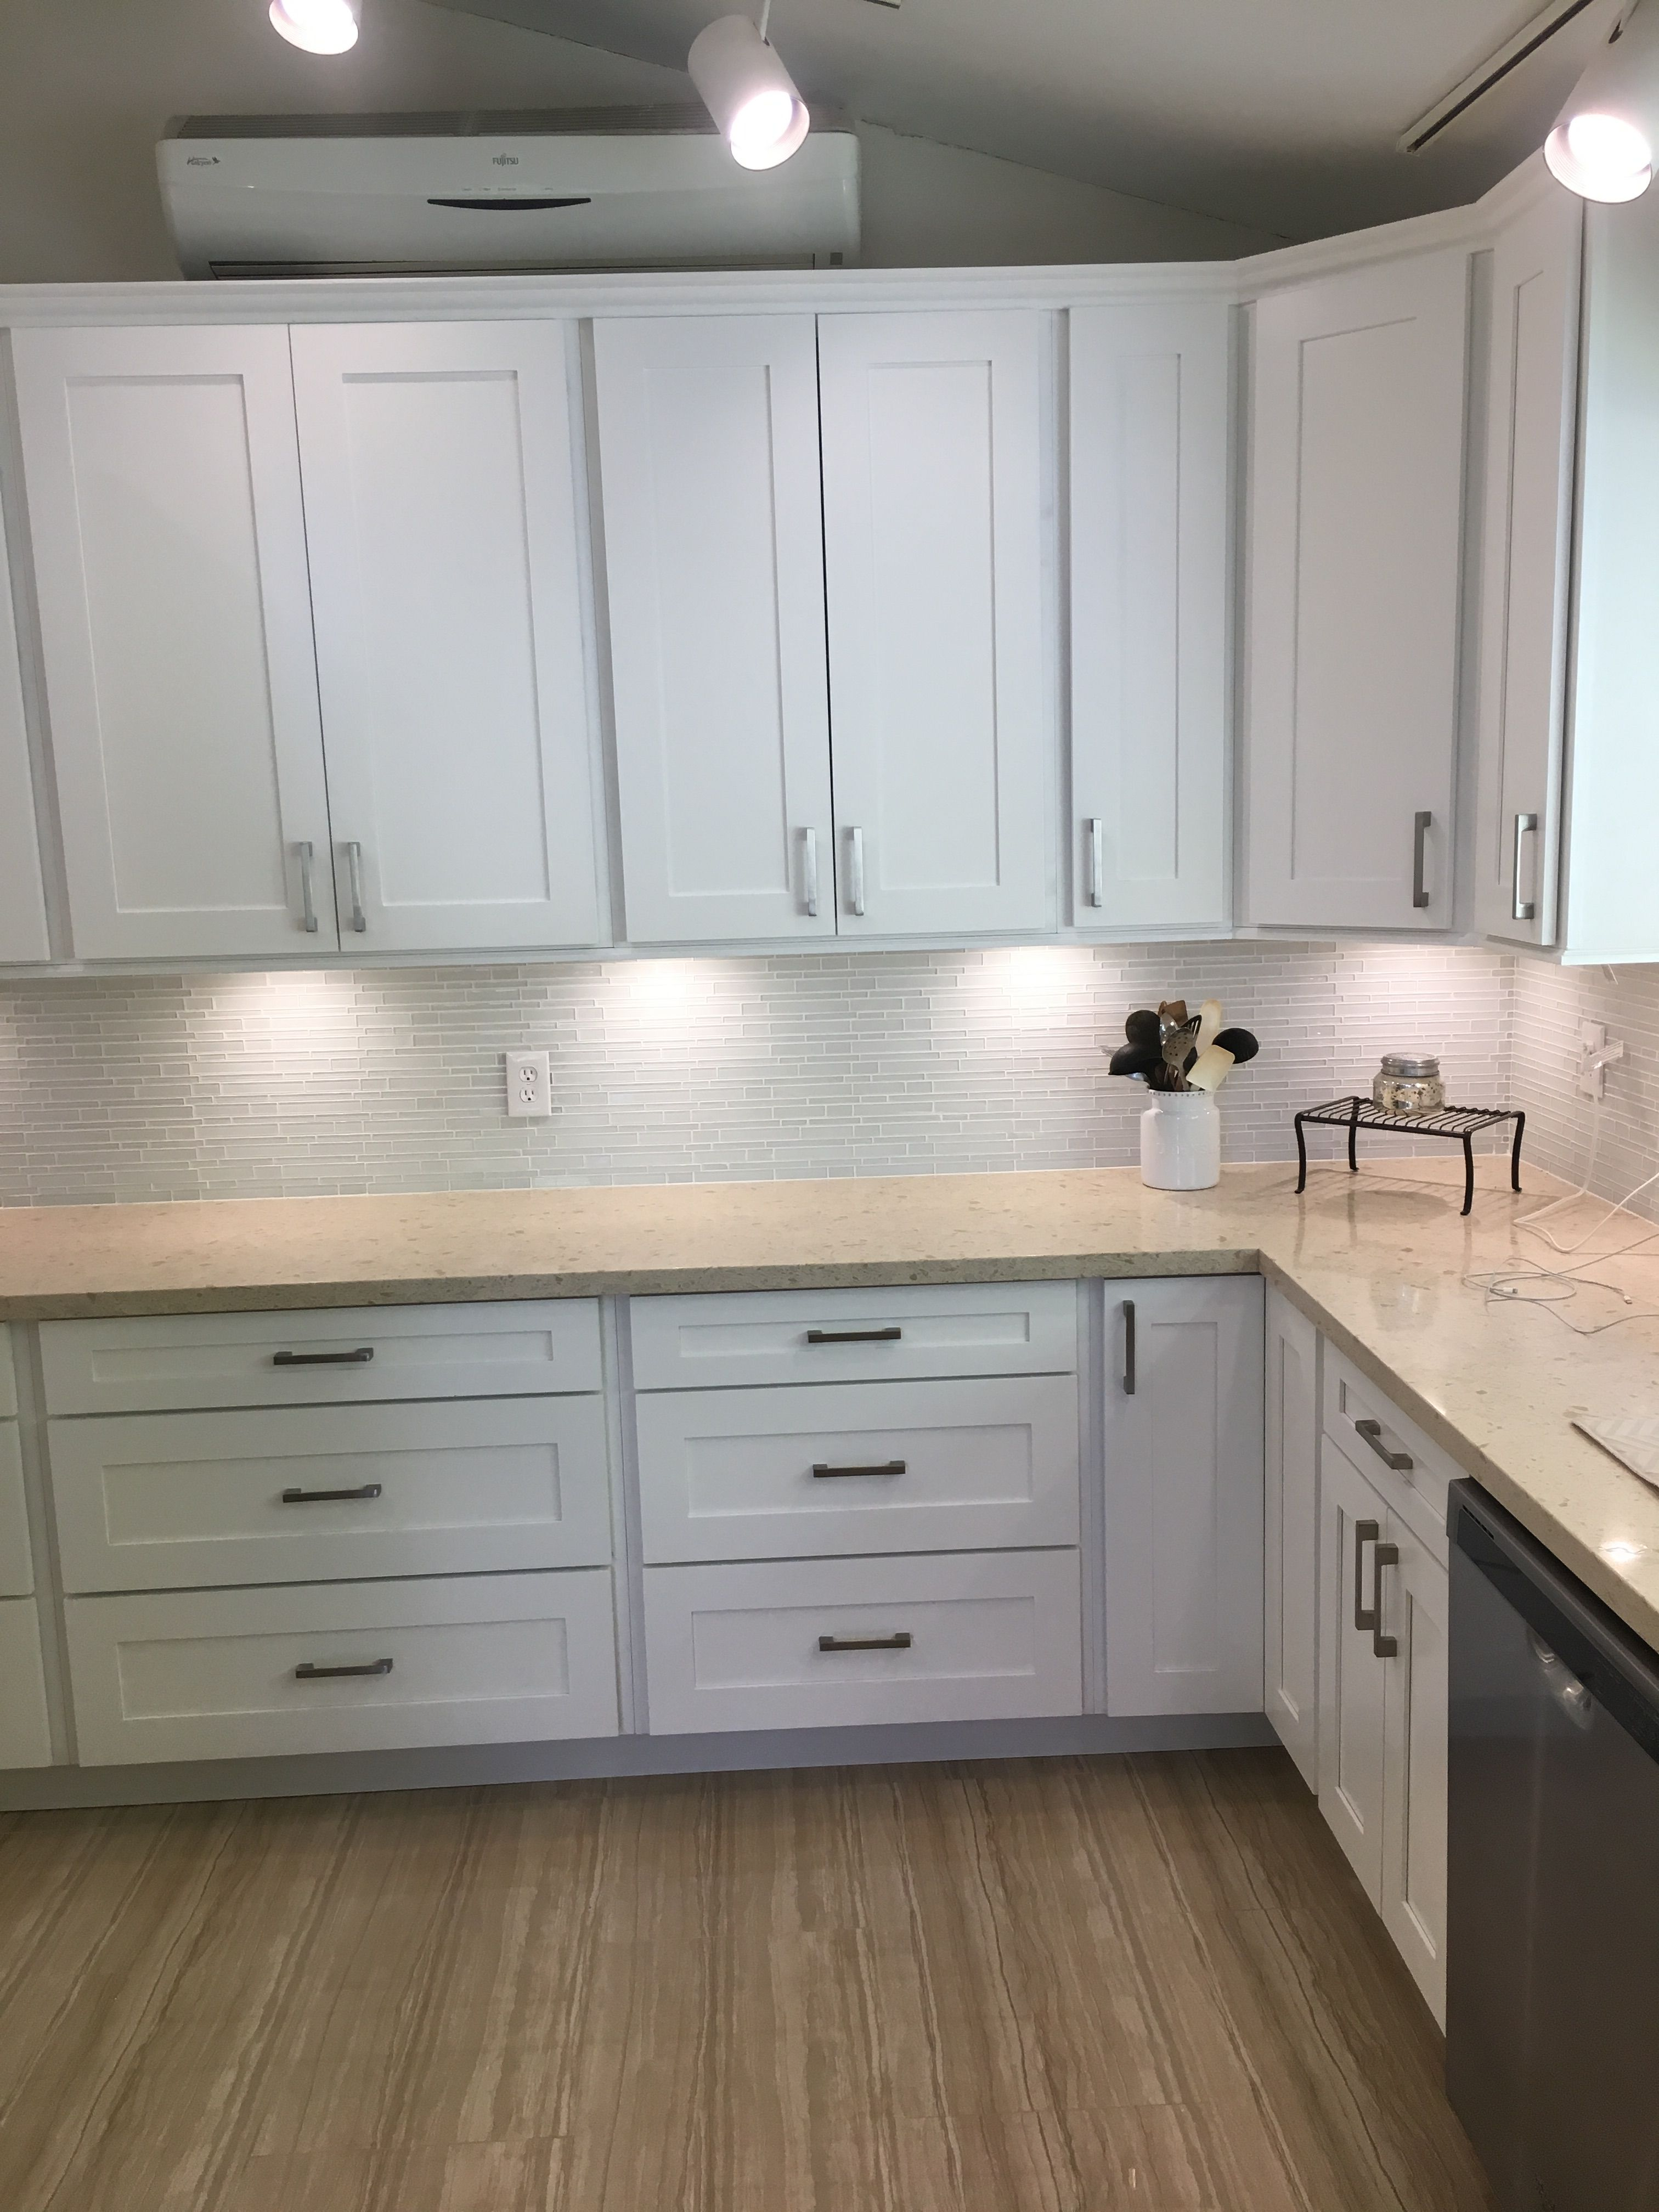 - 40 Inch Wall Cabinets, Crown Moulding,quartz Countertop, Glass